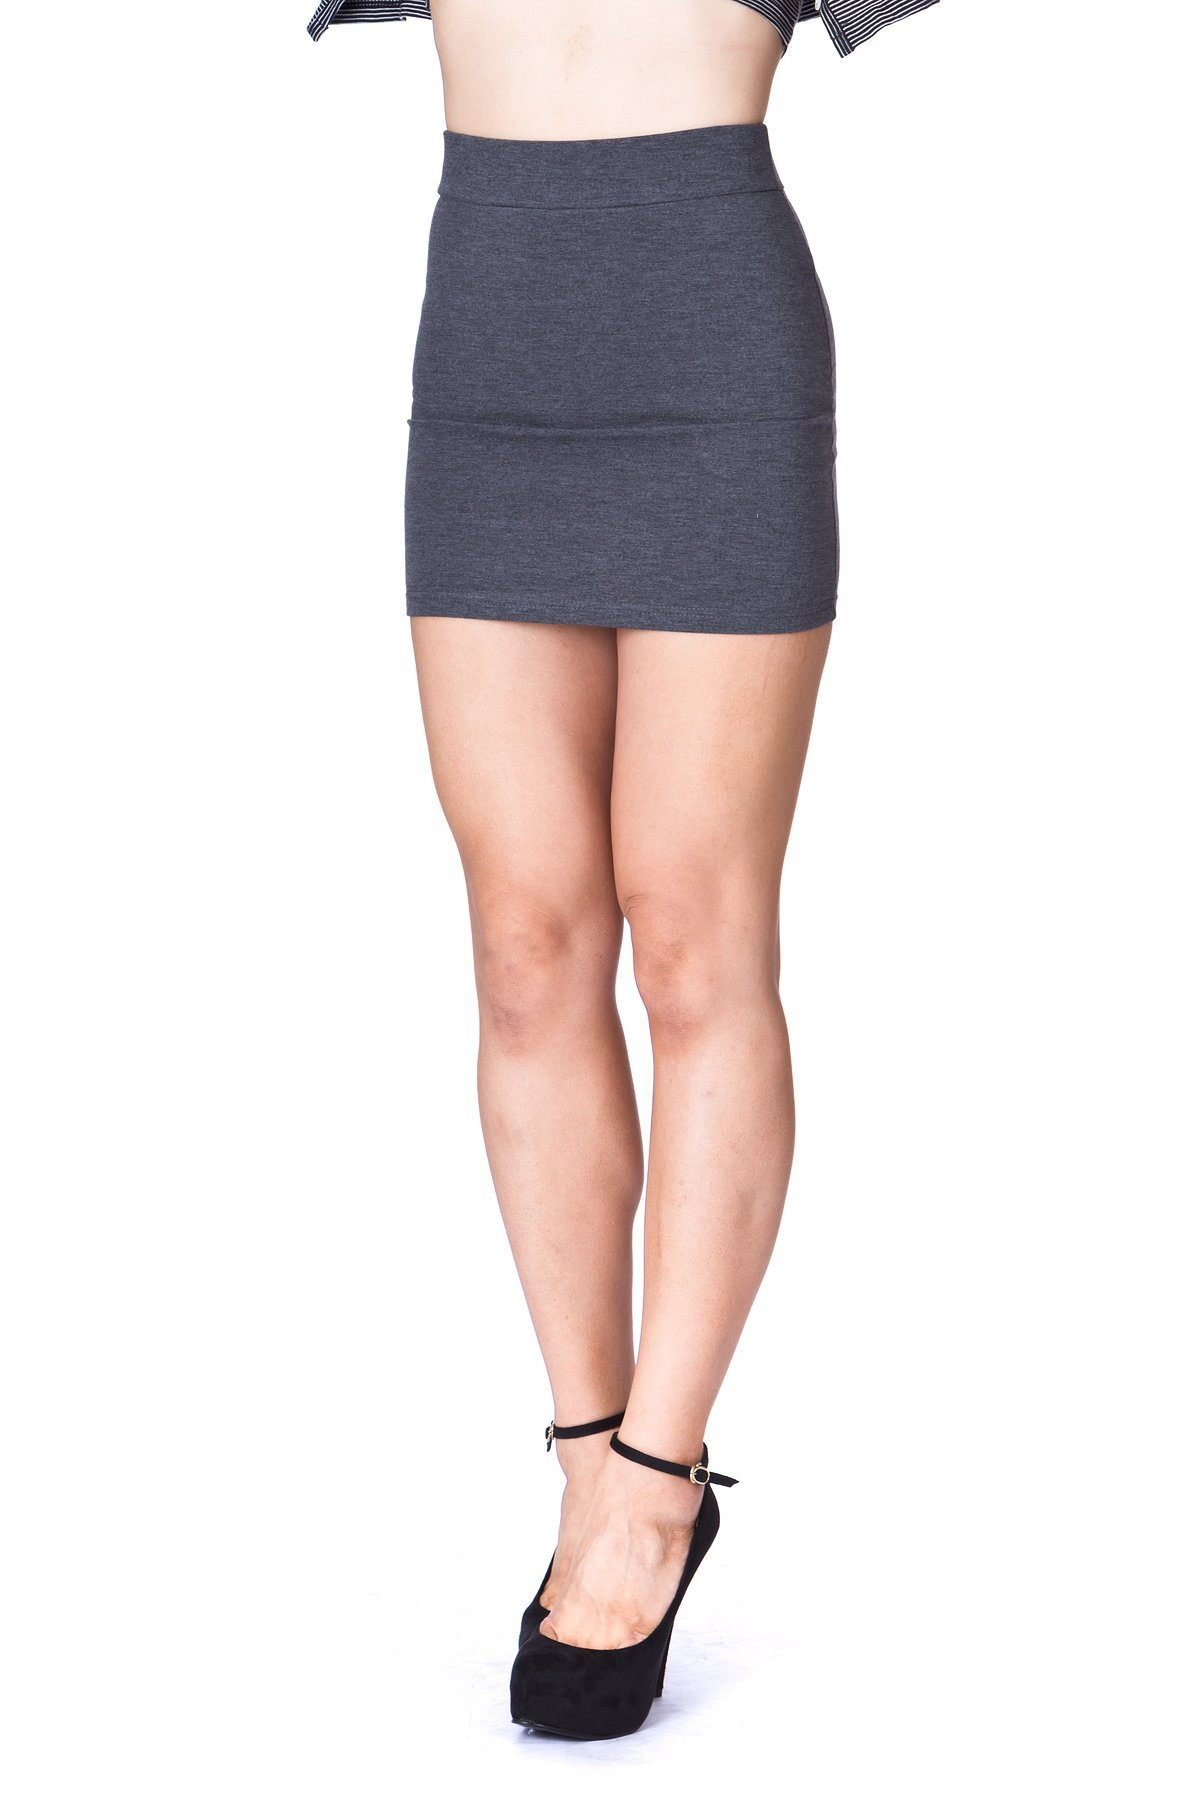 Must buy Basic Bodycon Pencil Short Mini Skirt Charcoal 5